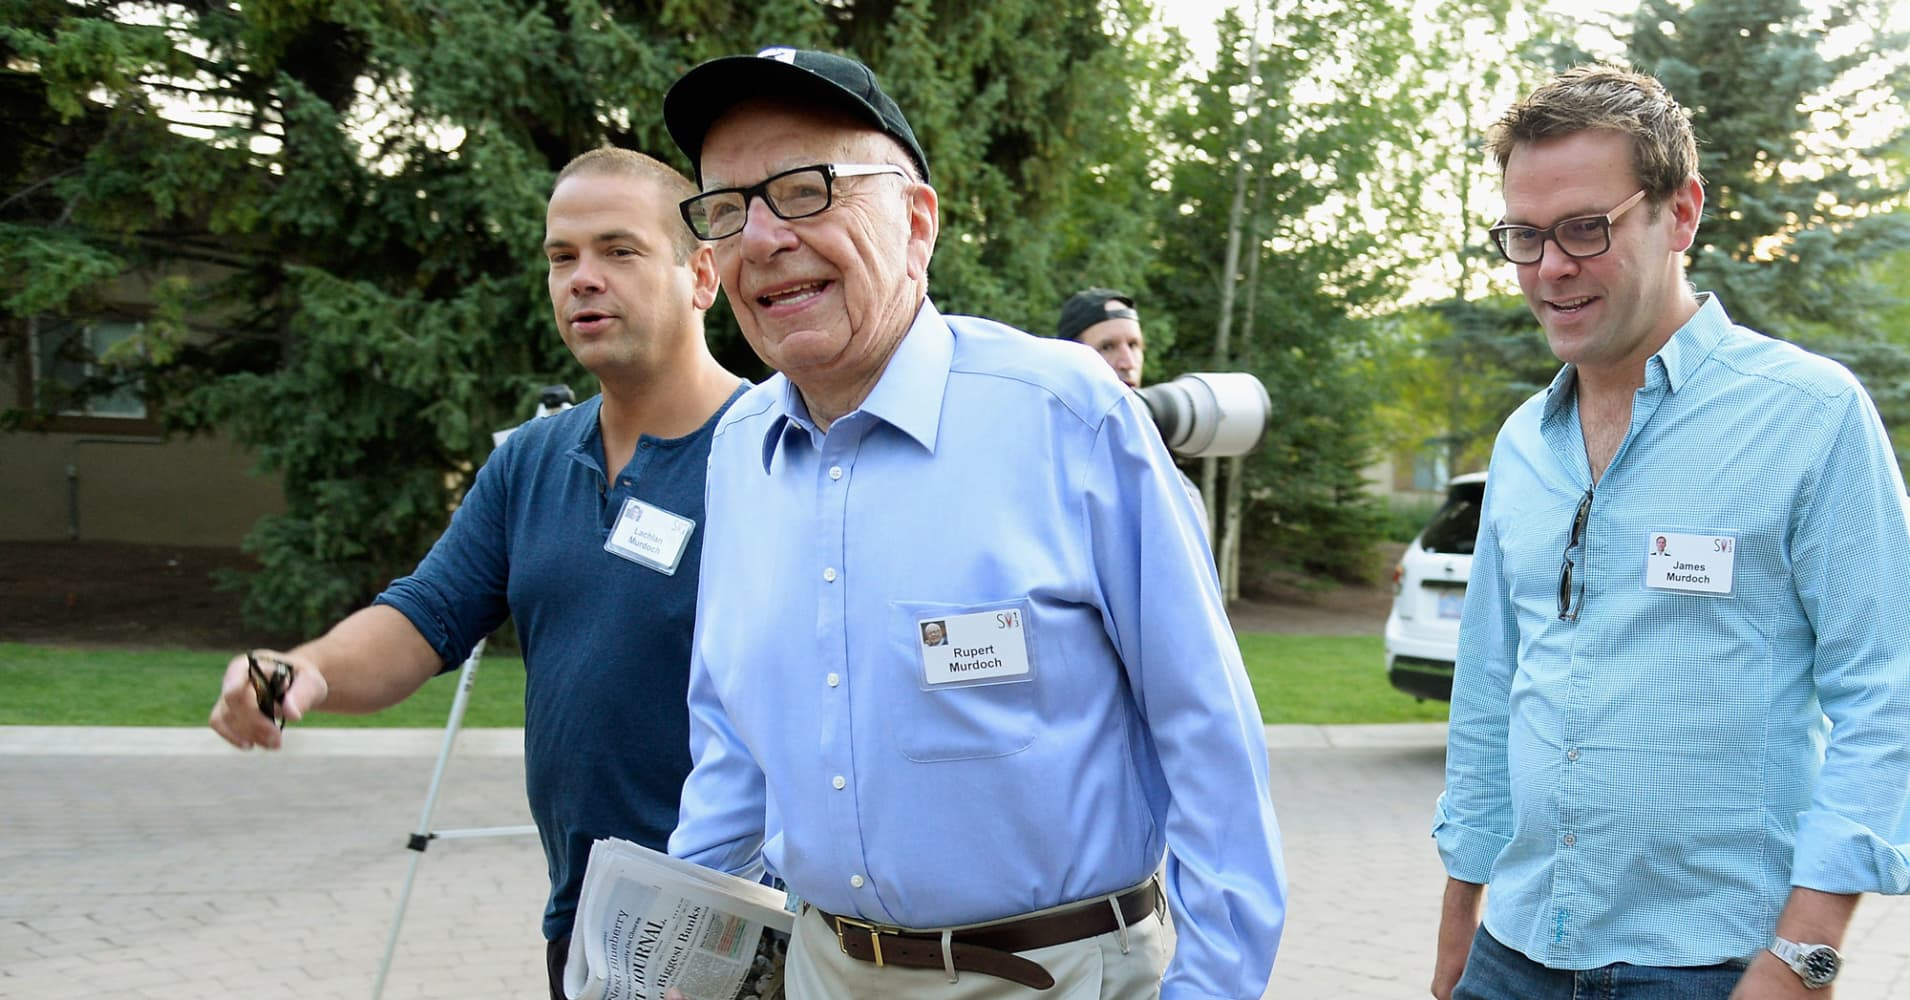 With Disney deal looming, Murdoch's empire is fractured